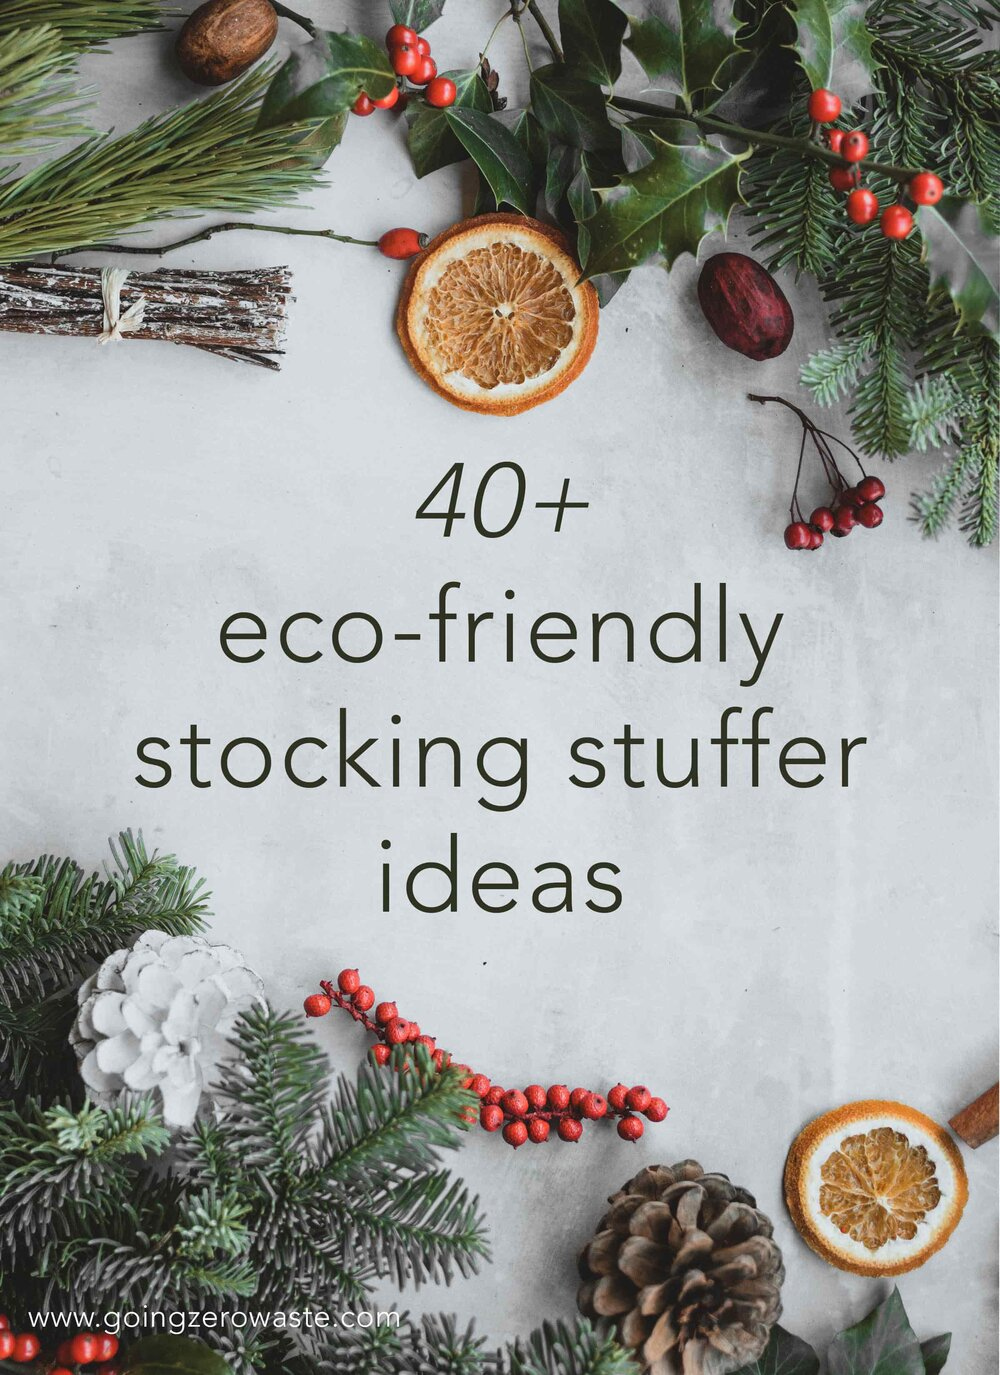 40+ Eco-Friendly Stocking Stuffers from www.goingzerowaste.com #stockingstuffer #stockingfiller #ecofriendly #sustainable #sustainablegifts #zerowaste #eco #ecogfits #giftguide #sustainablestockings